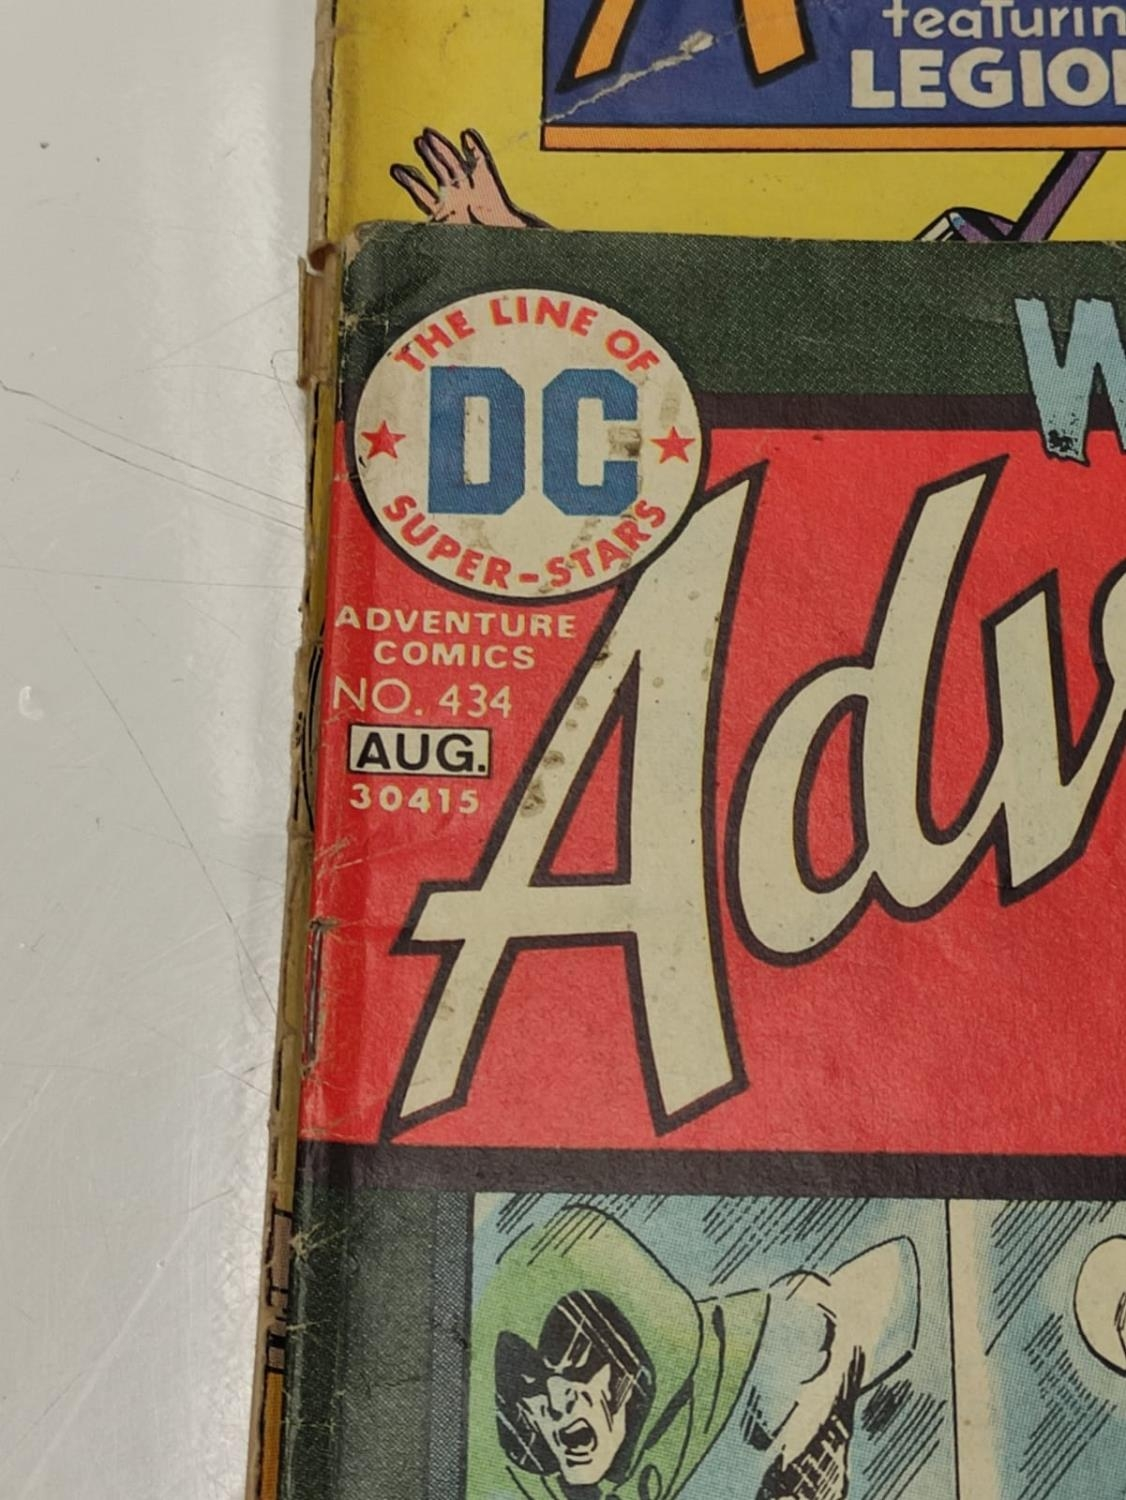 5 editions of DC Adventure Comics featuring Super-boy. - Image 10 of 19